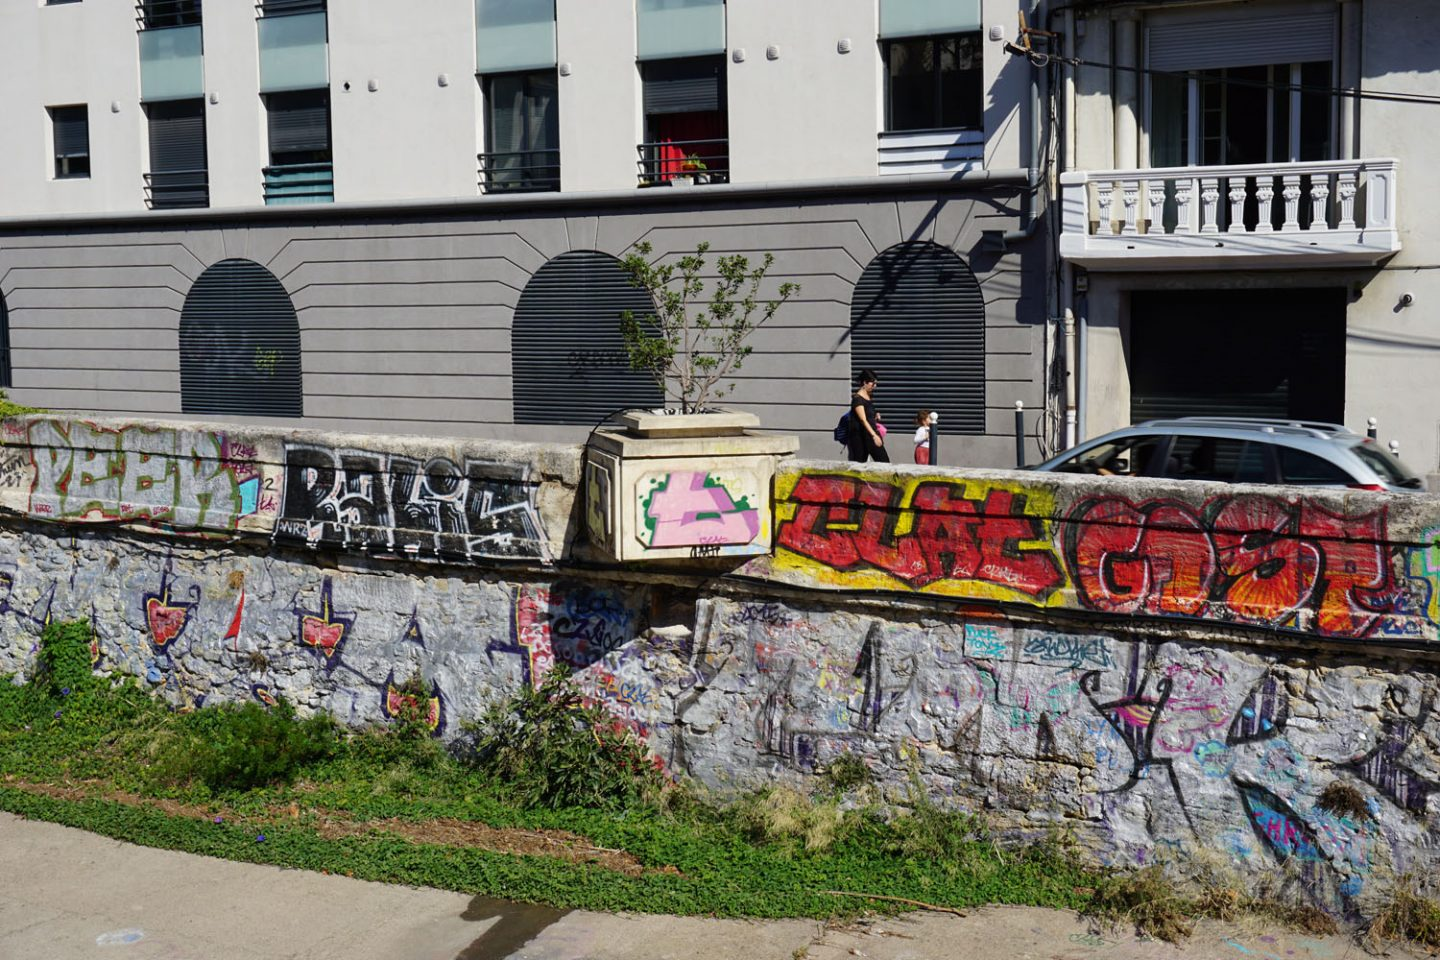 Montpellier: The VERDANSON is flowing with graff